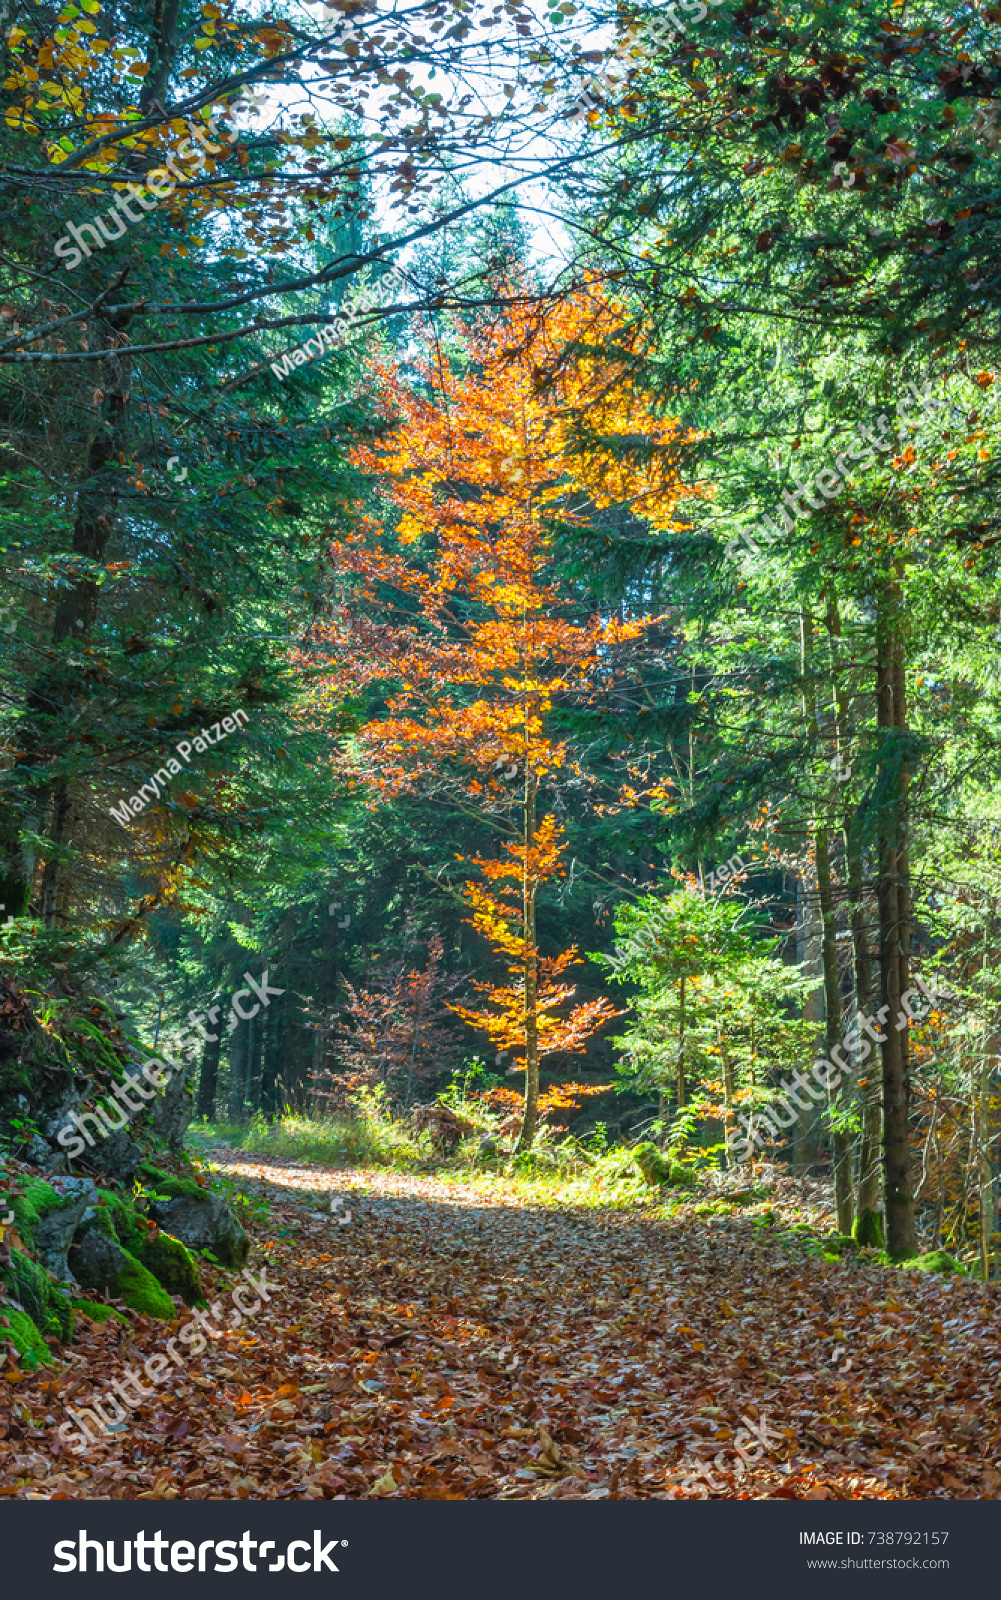 Bright Color Palette Autumn Forest Stock Photo 738792157 - Shutterstock